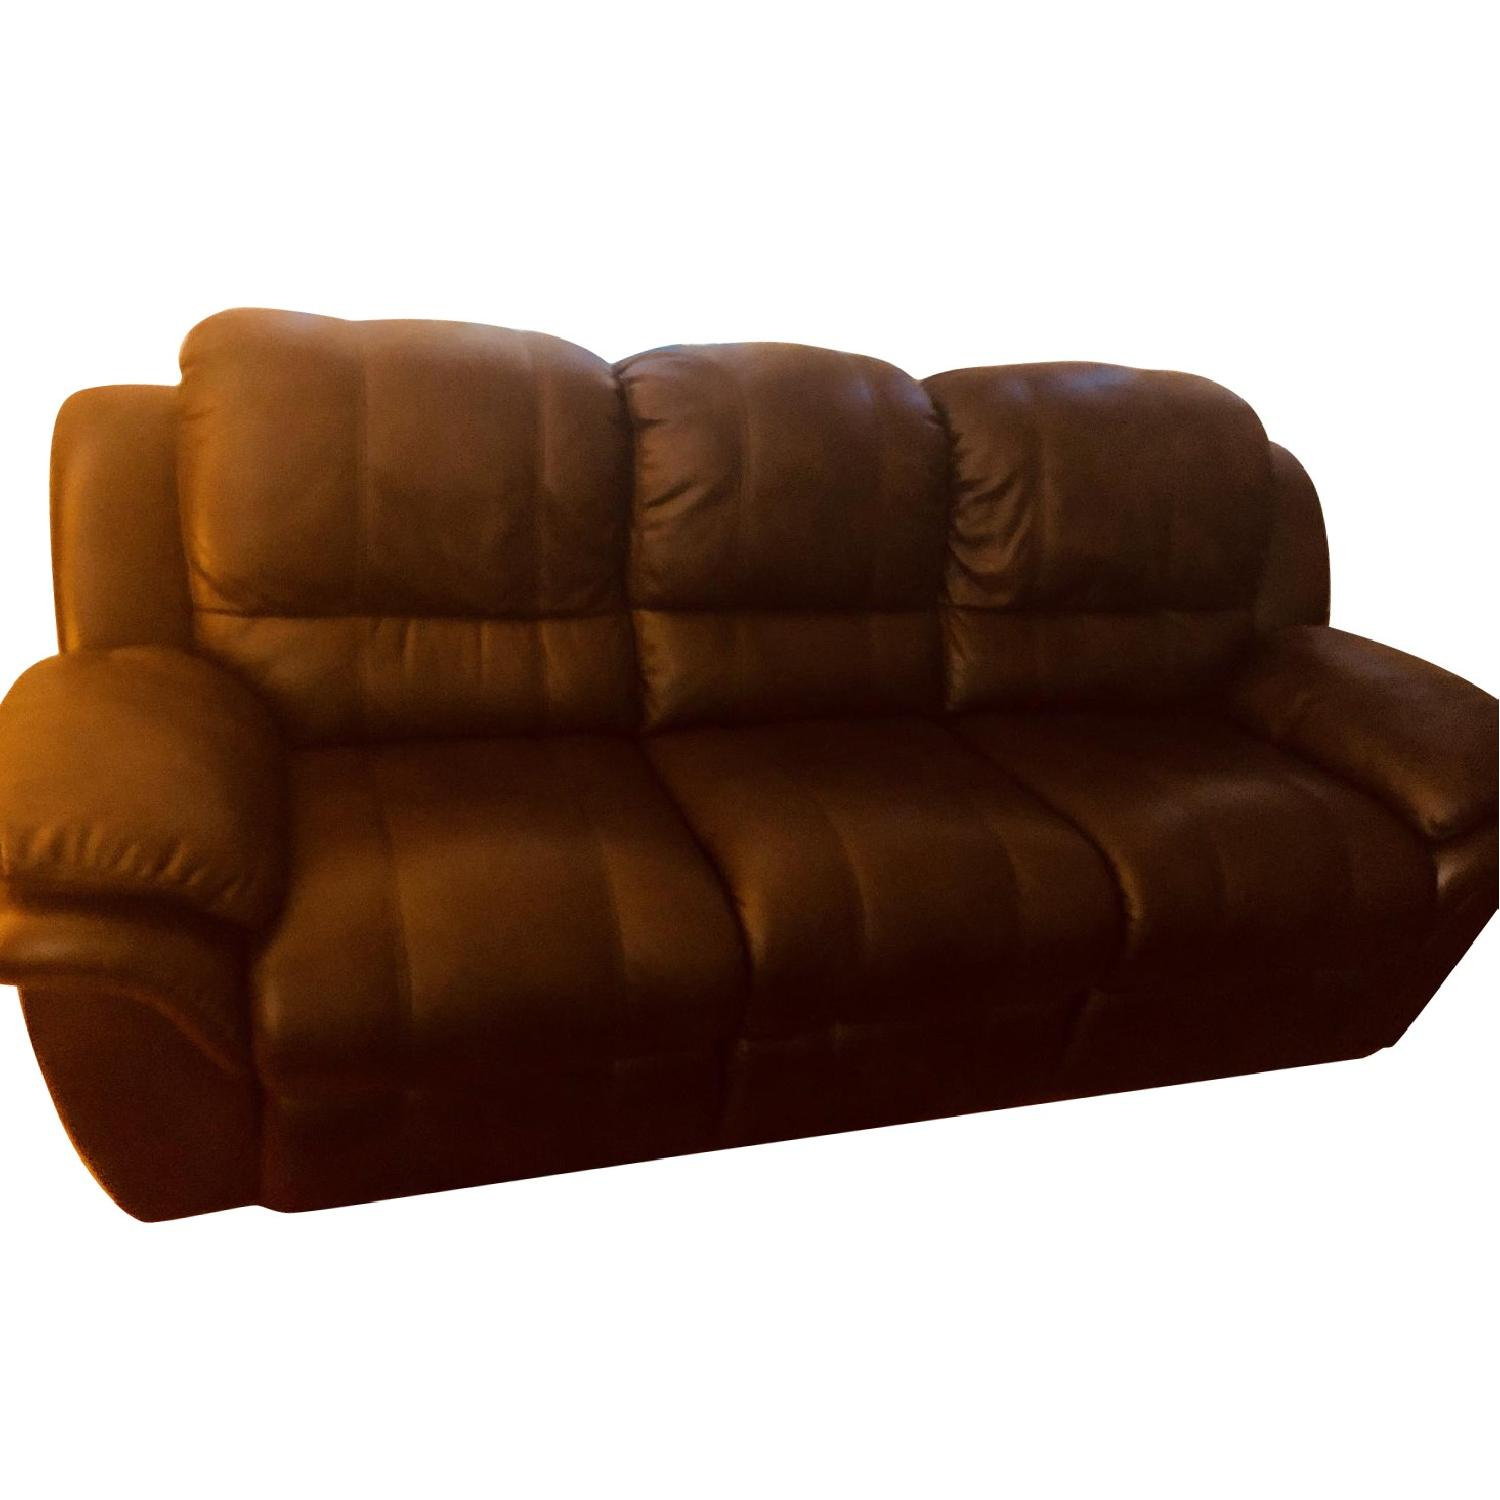 Bob's 3 Seater Recliner Sofa